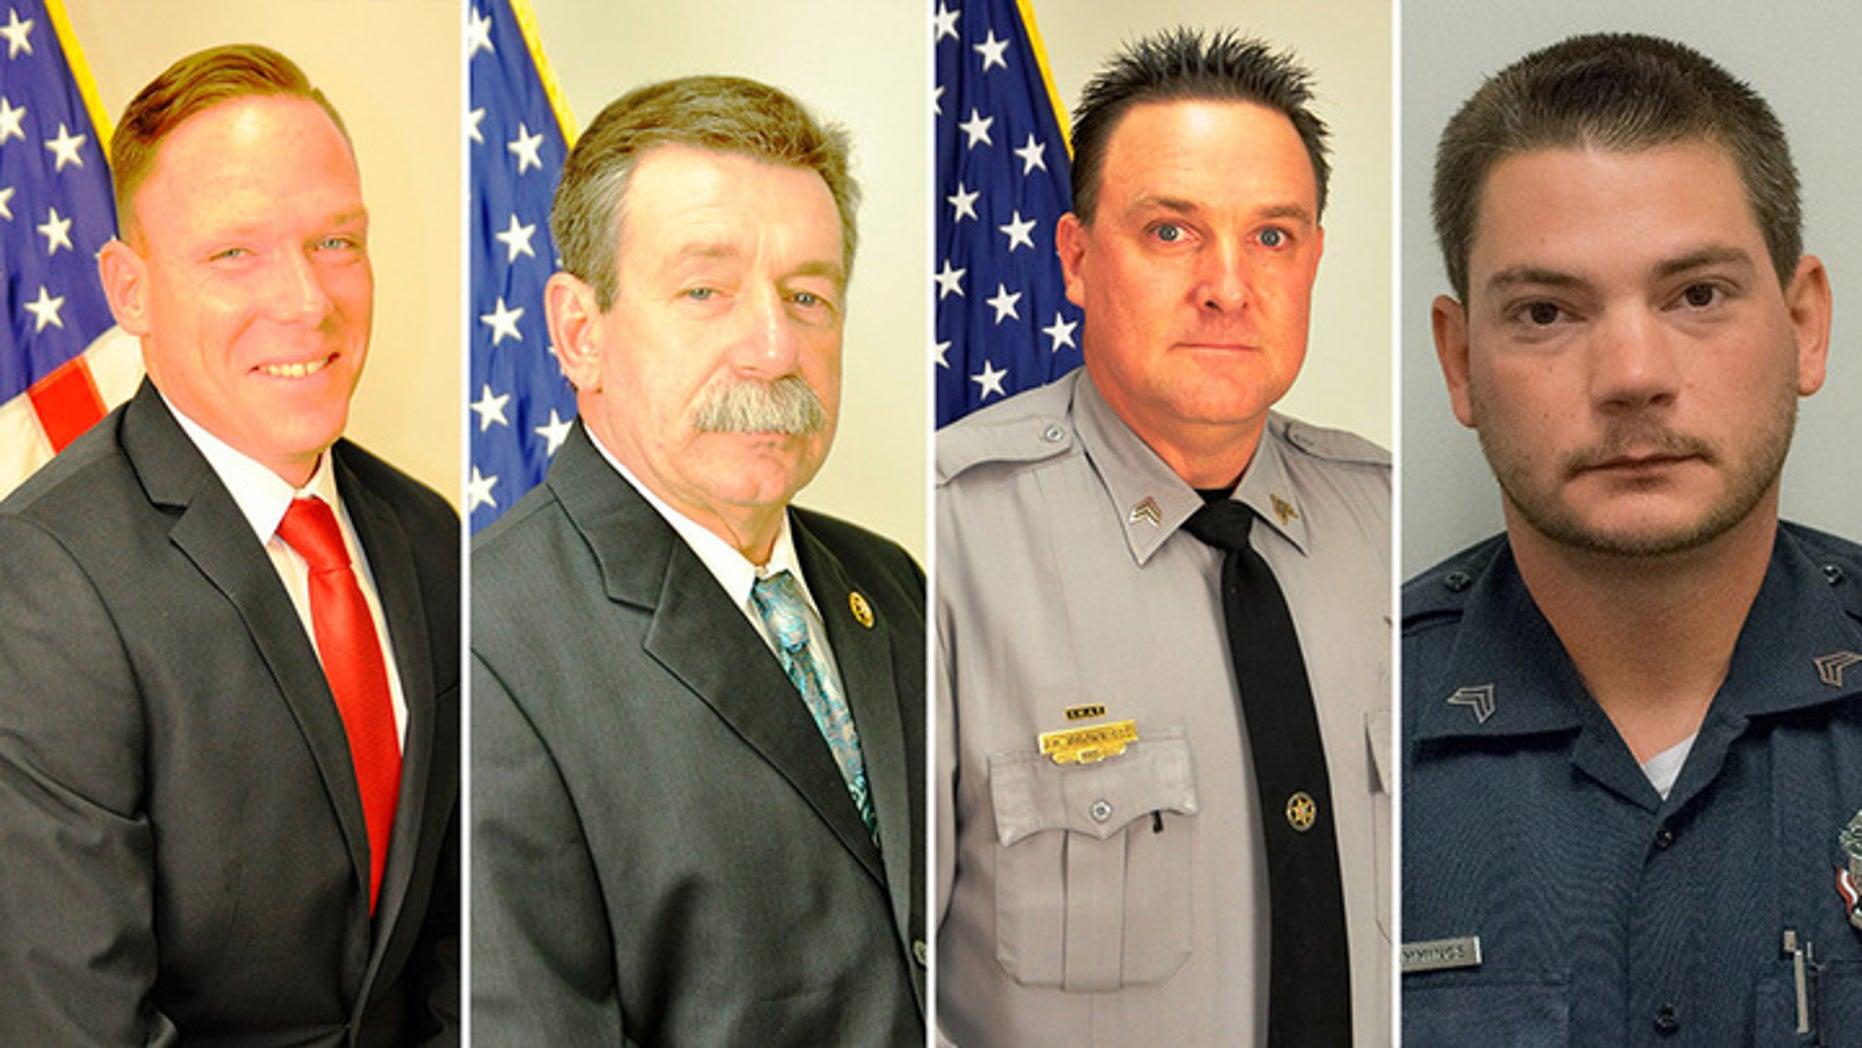 Christian Thomas McCall, 47, was accused of shooting Det. Michael Doty, Sgt. Randy Clinton, Sgt. Buddy Brown and Sgt. Kyle Cummings early Tuesday morning in York, S.C.